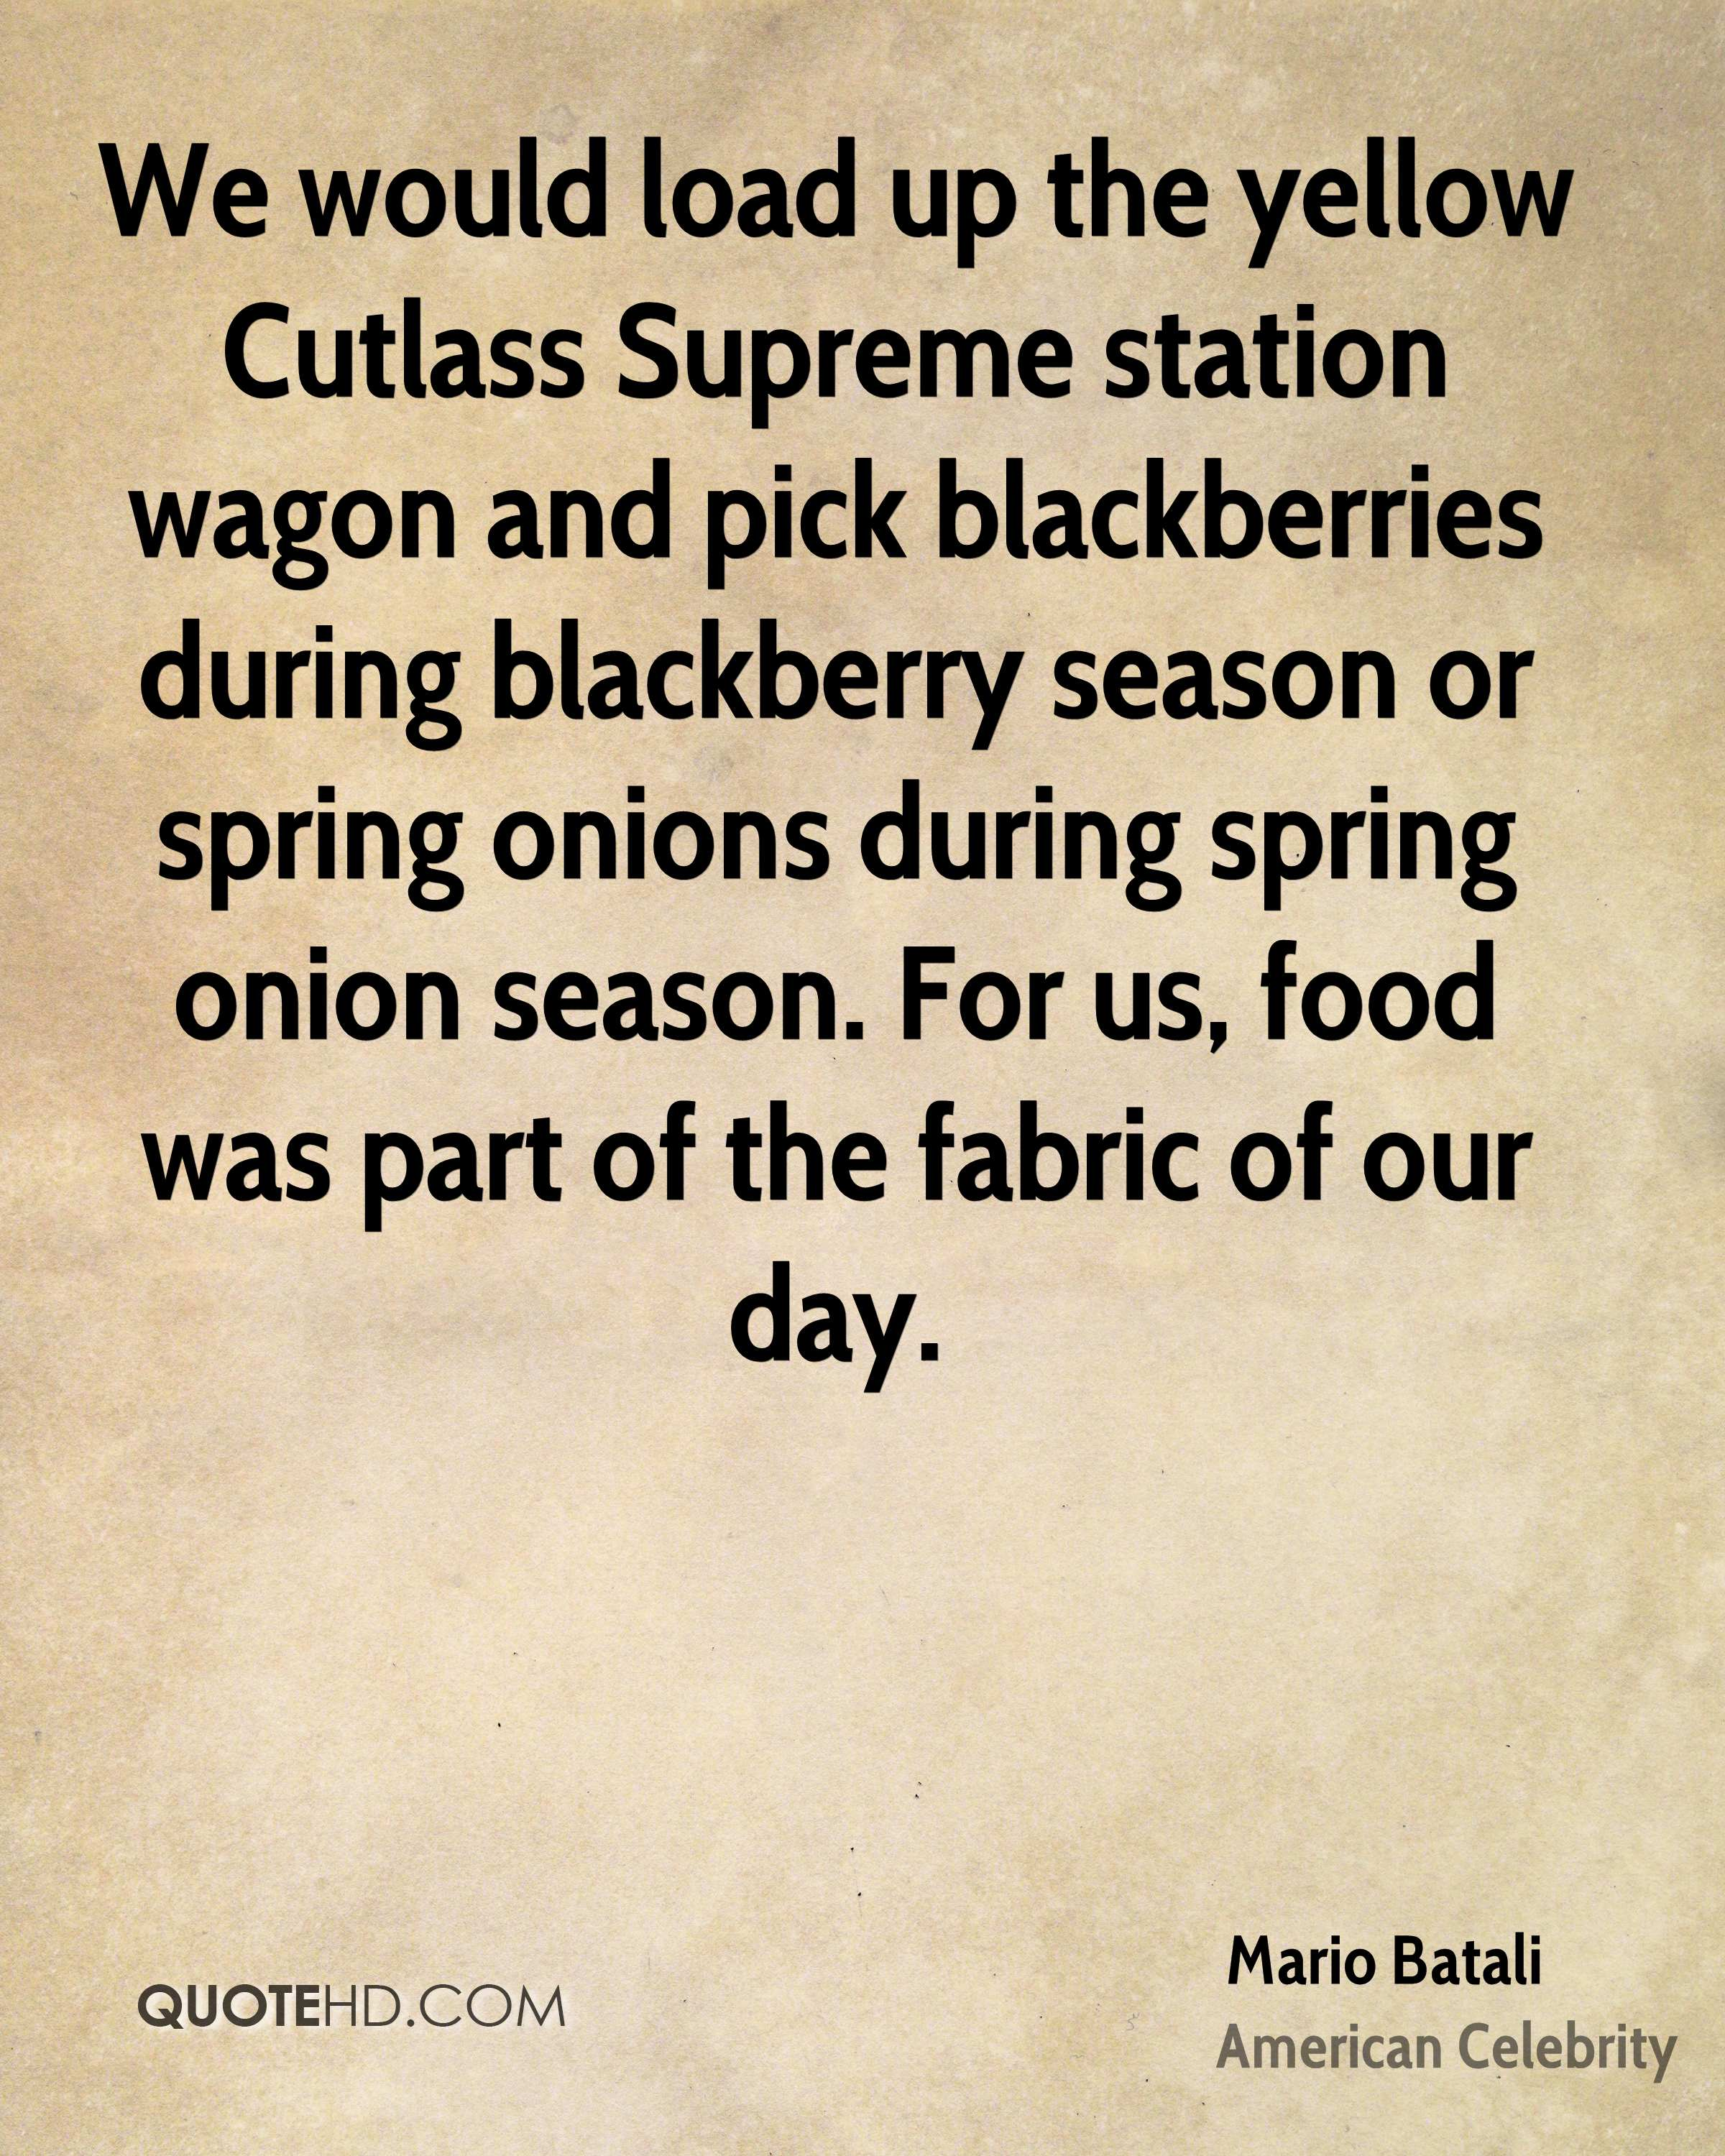 We would load up the yellow Cutlass Supreme station wagon and pick blackberries during blackberry season or spring onions during spring onion season. For us, food was part of the fabric of our day.